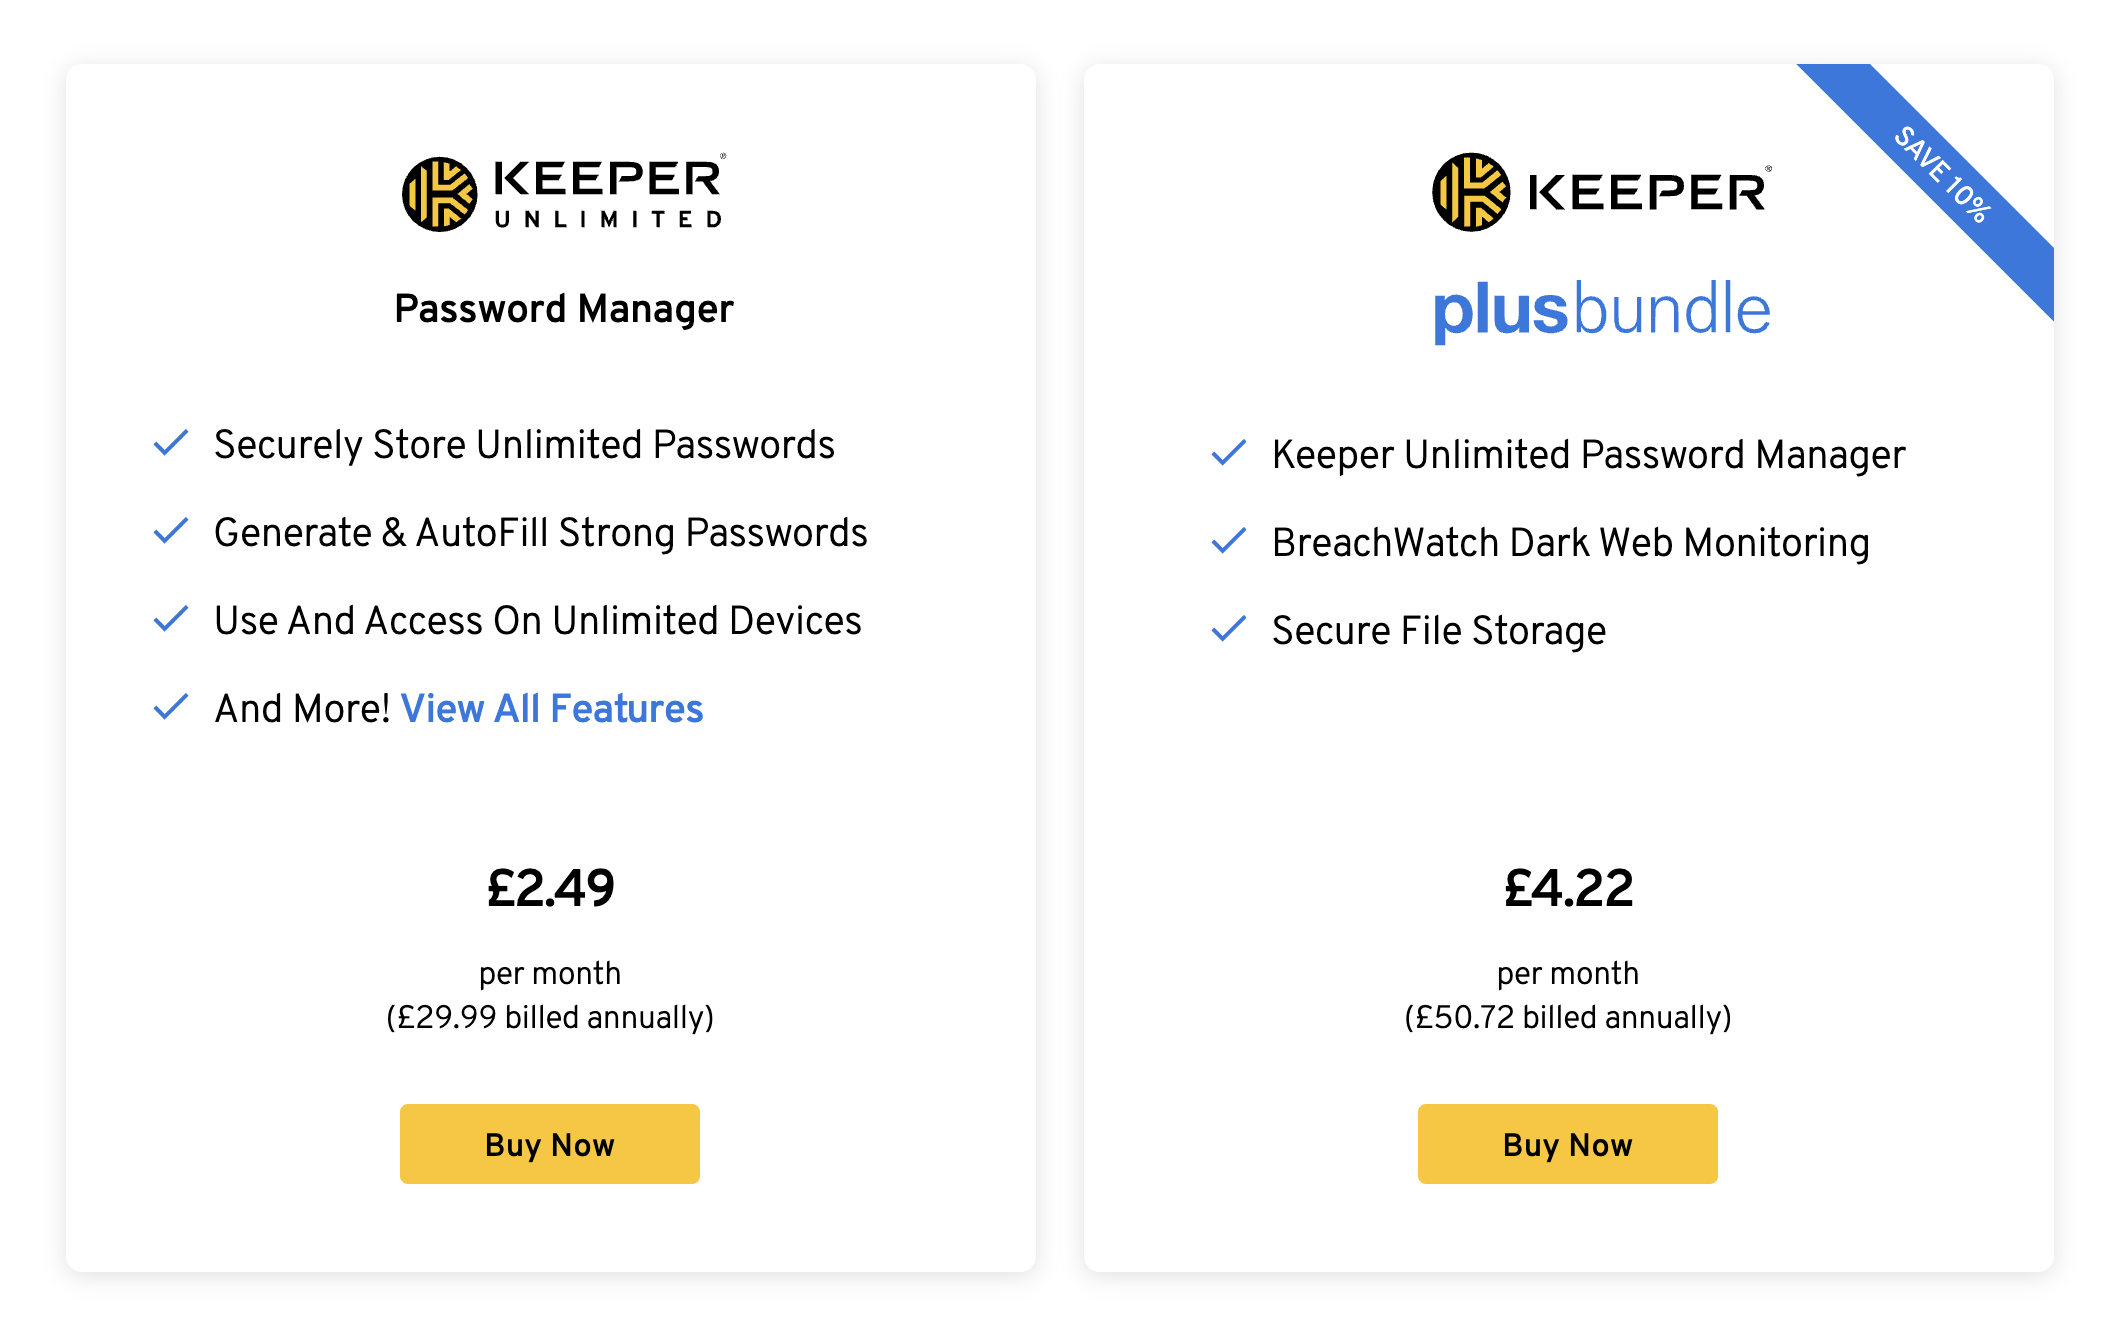 keeper prices